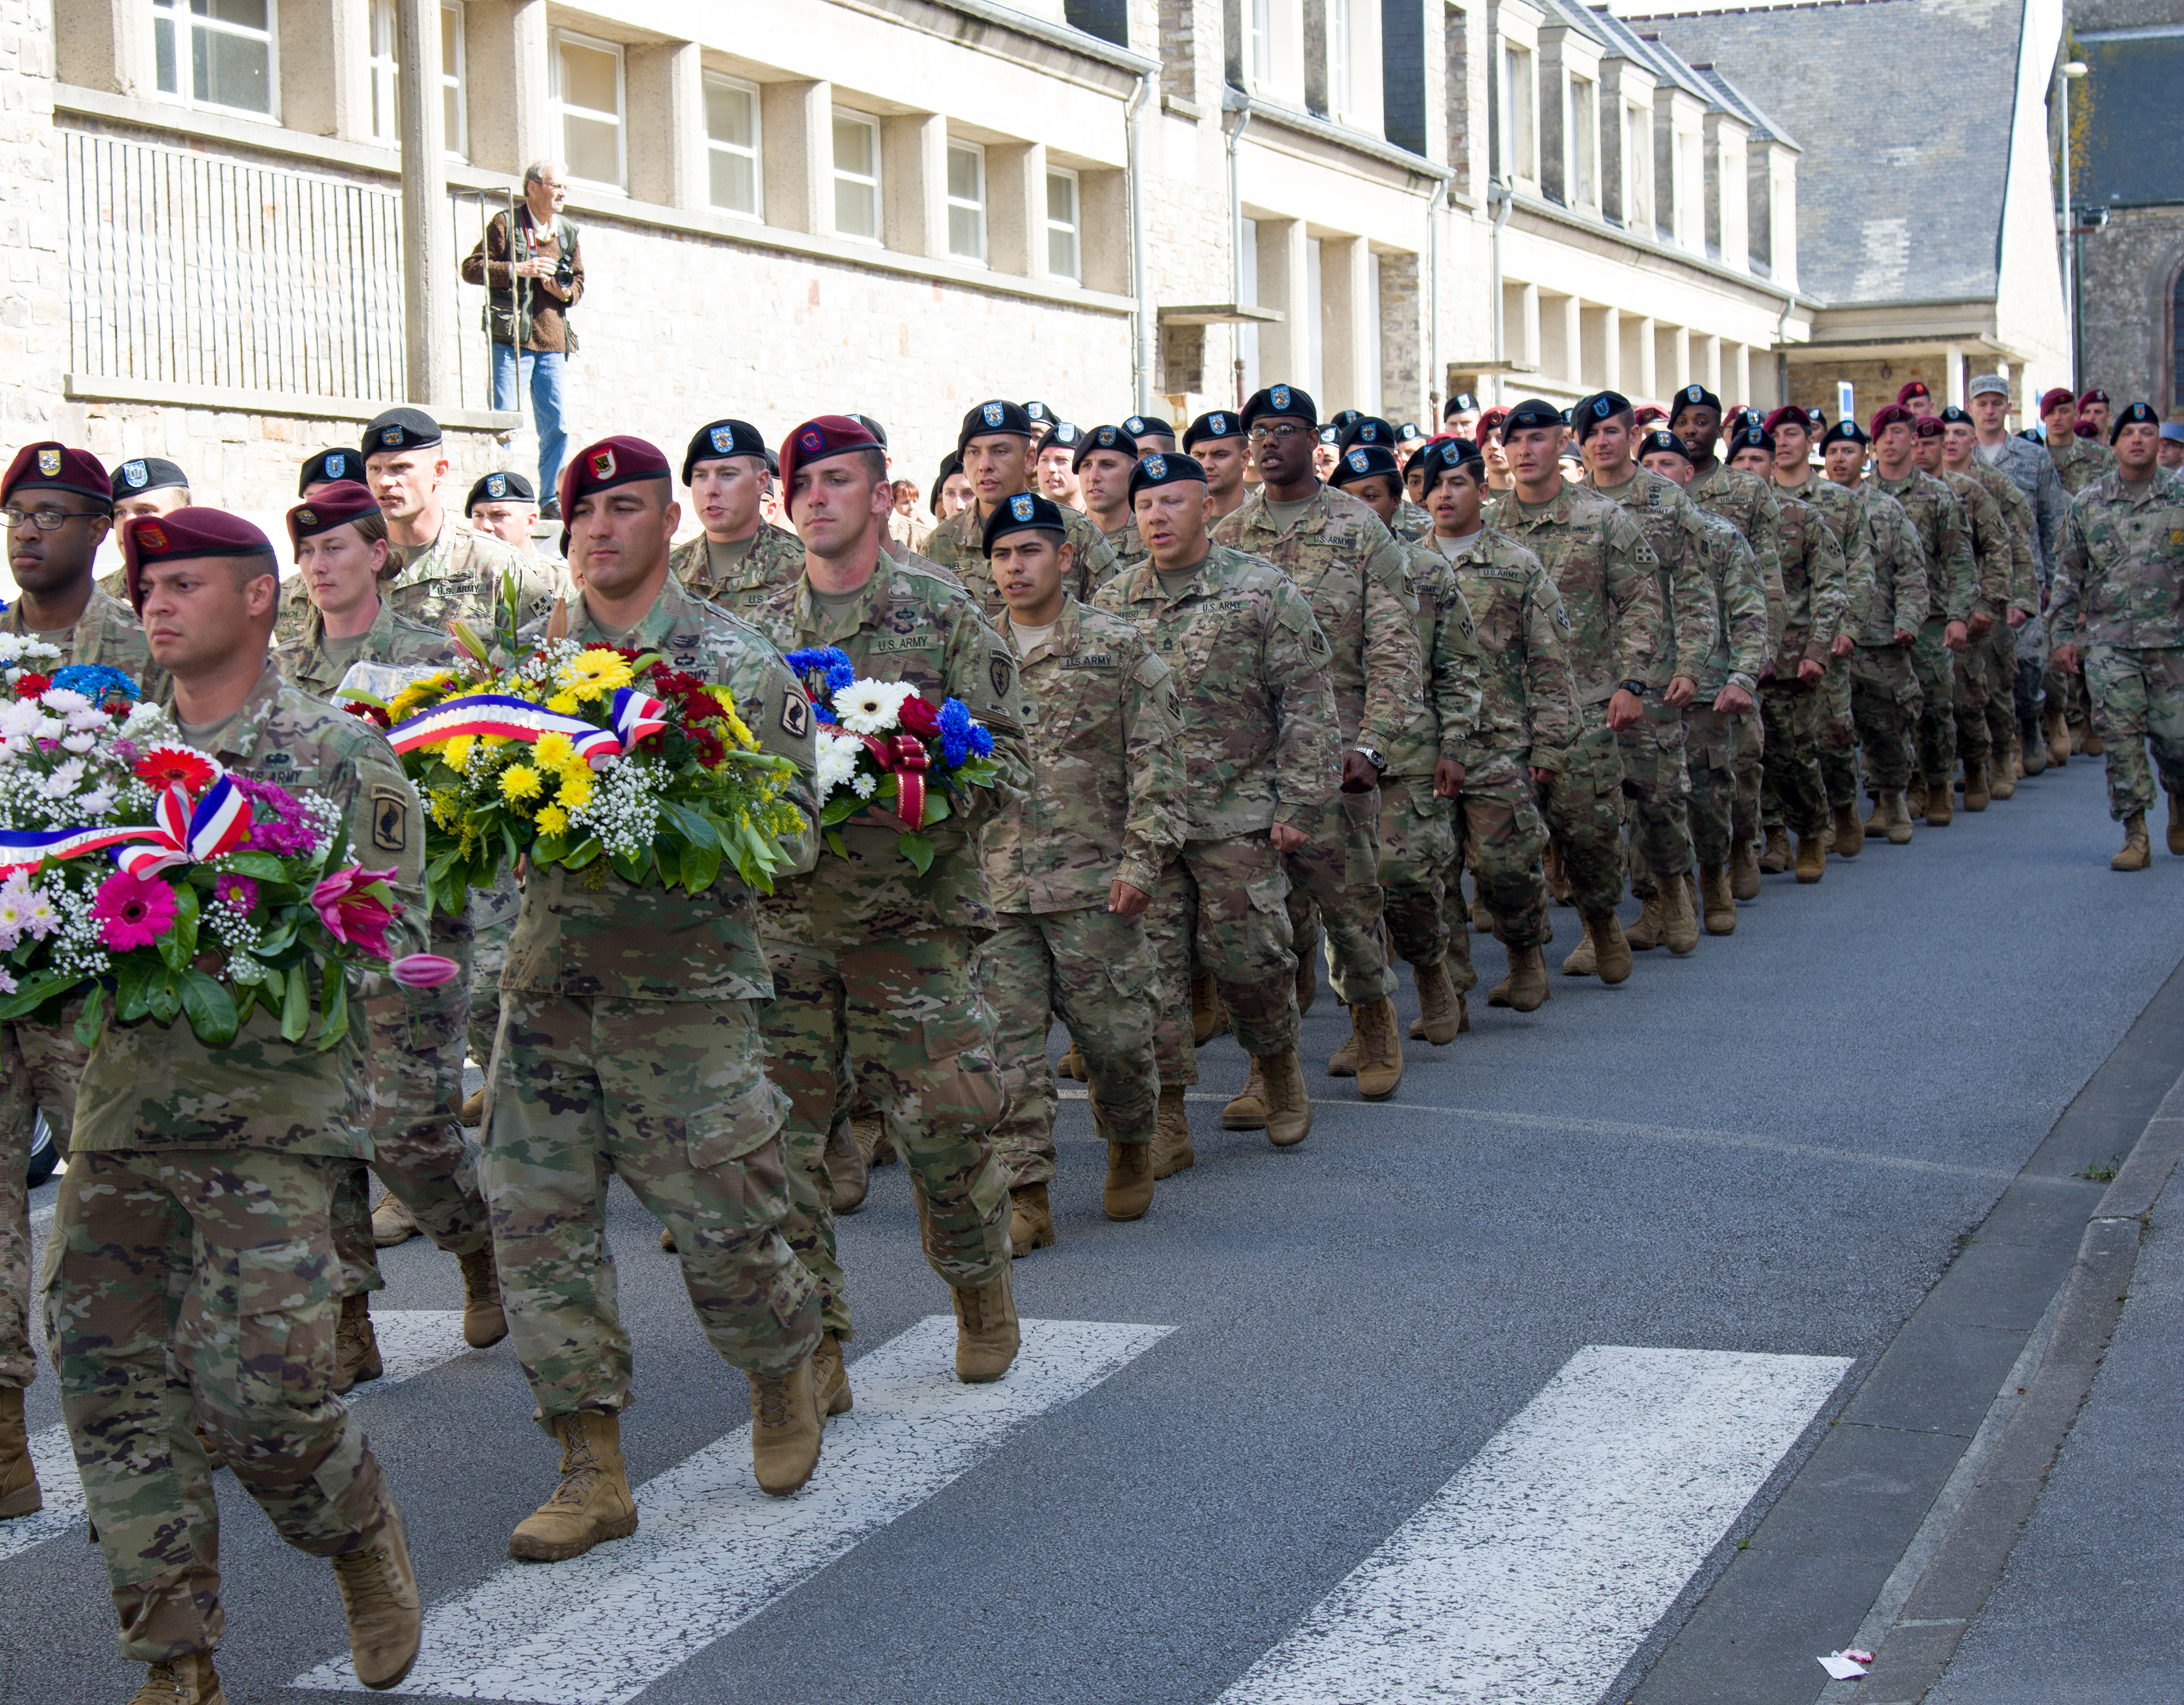 Berets and wreaths.